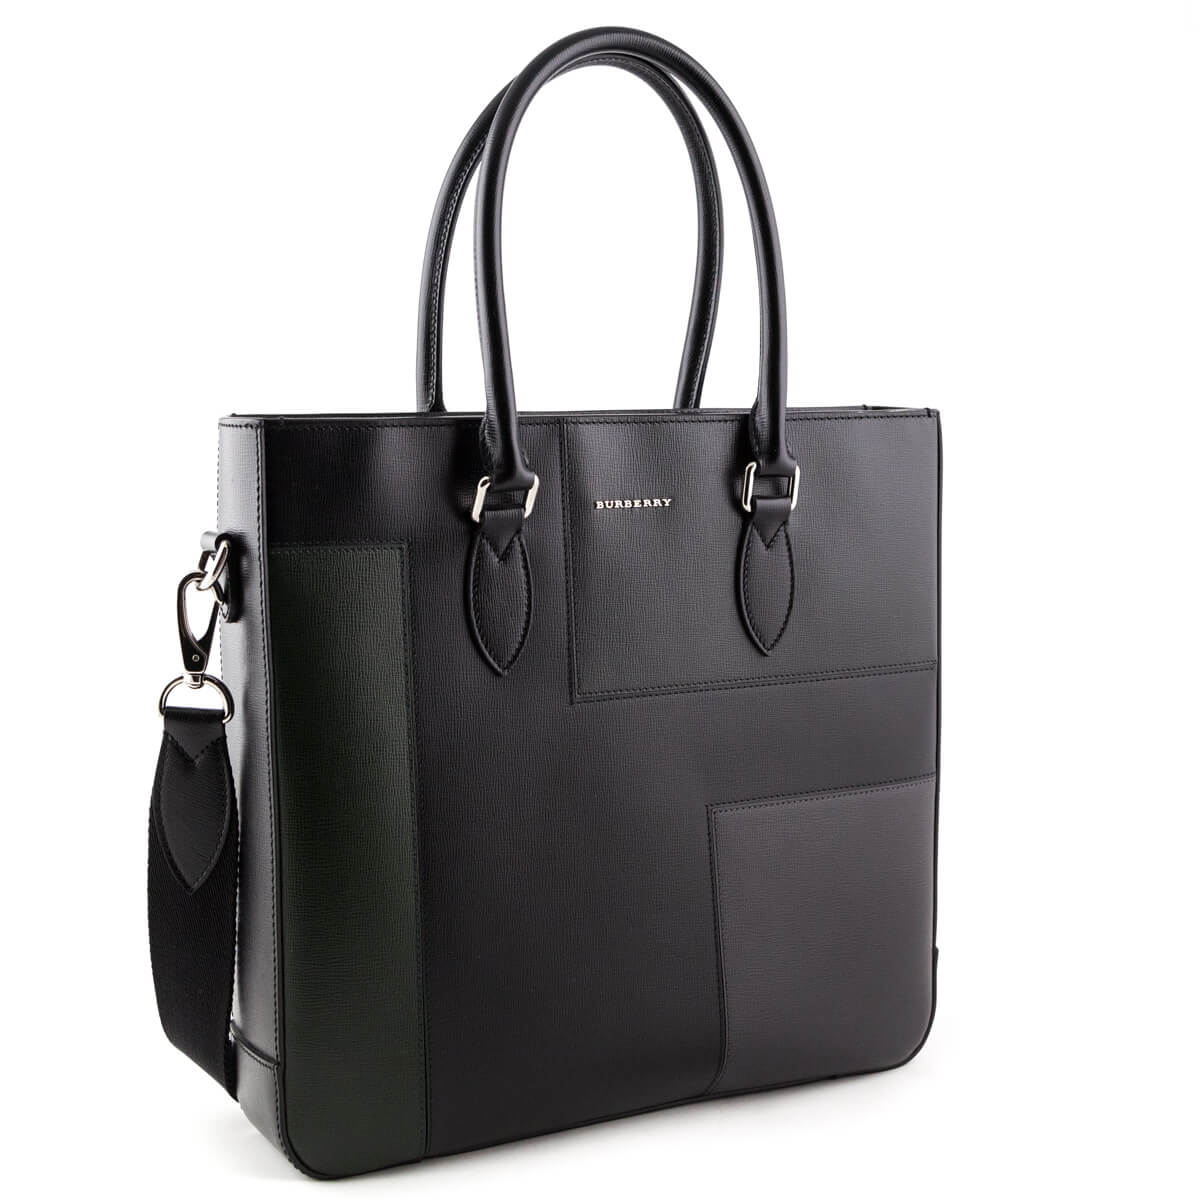 d8e47bc9ed84 ... Burberry Black Patchwork Leather Tote - LOVE that BAG - Preowned  Authentic Designer Handbags ...